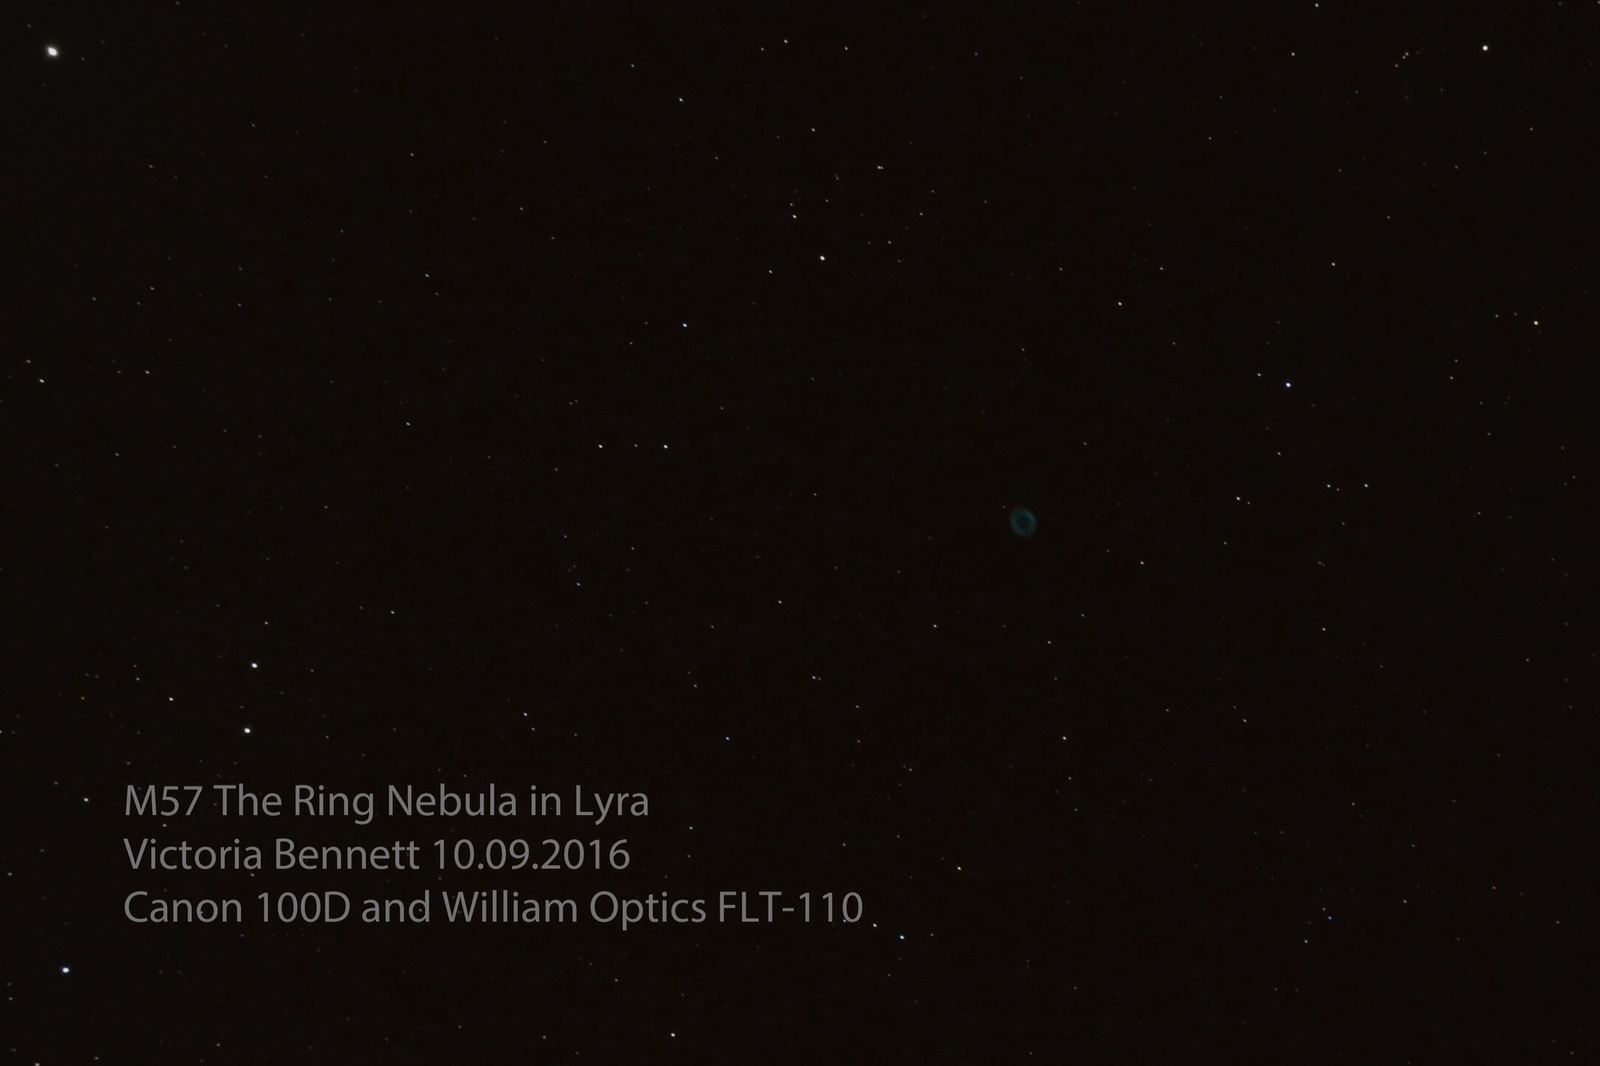 M57 The Ring Nebula in Lyra 10.09.2016